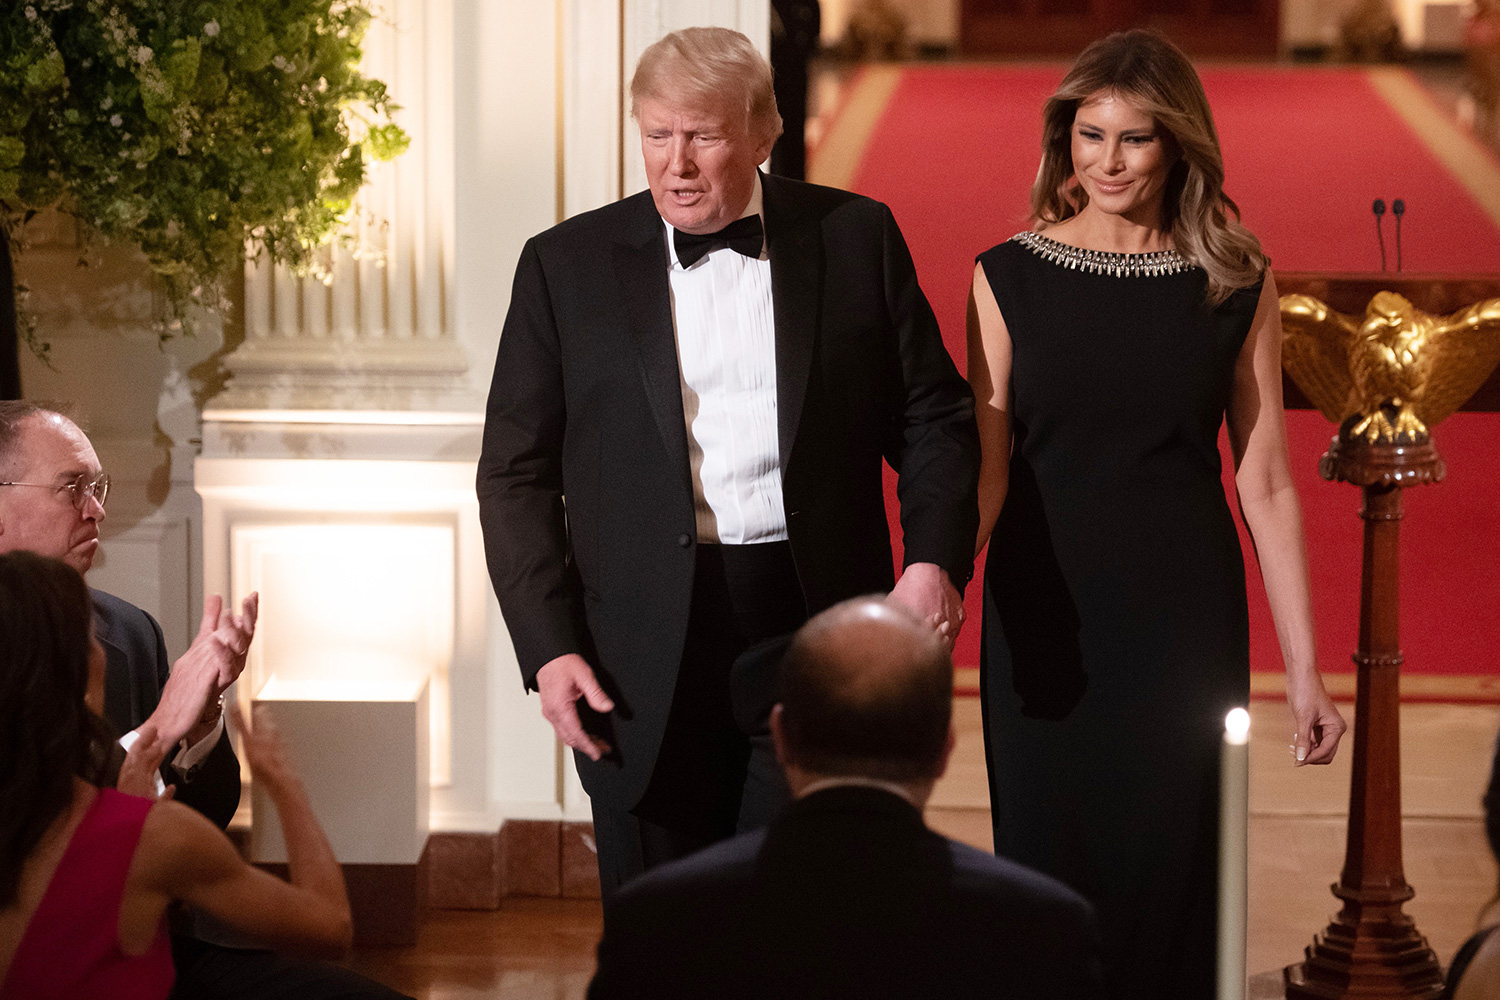 US President Donald Trump speaks alongside First Lady Melania Trump as they host the Governors' Ball in the East Room of the White House in Washington, DC, February 9, 2020